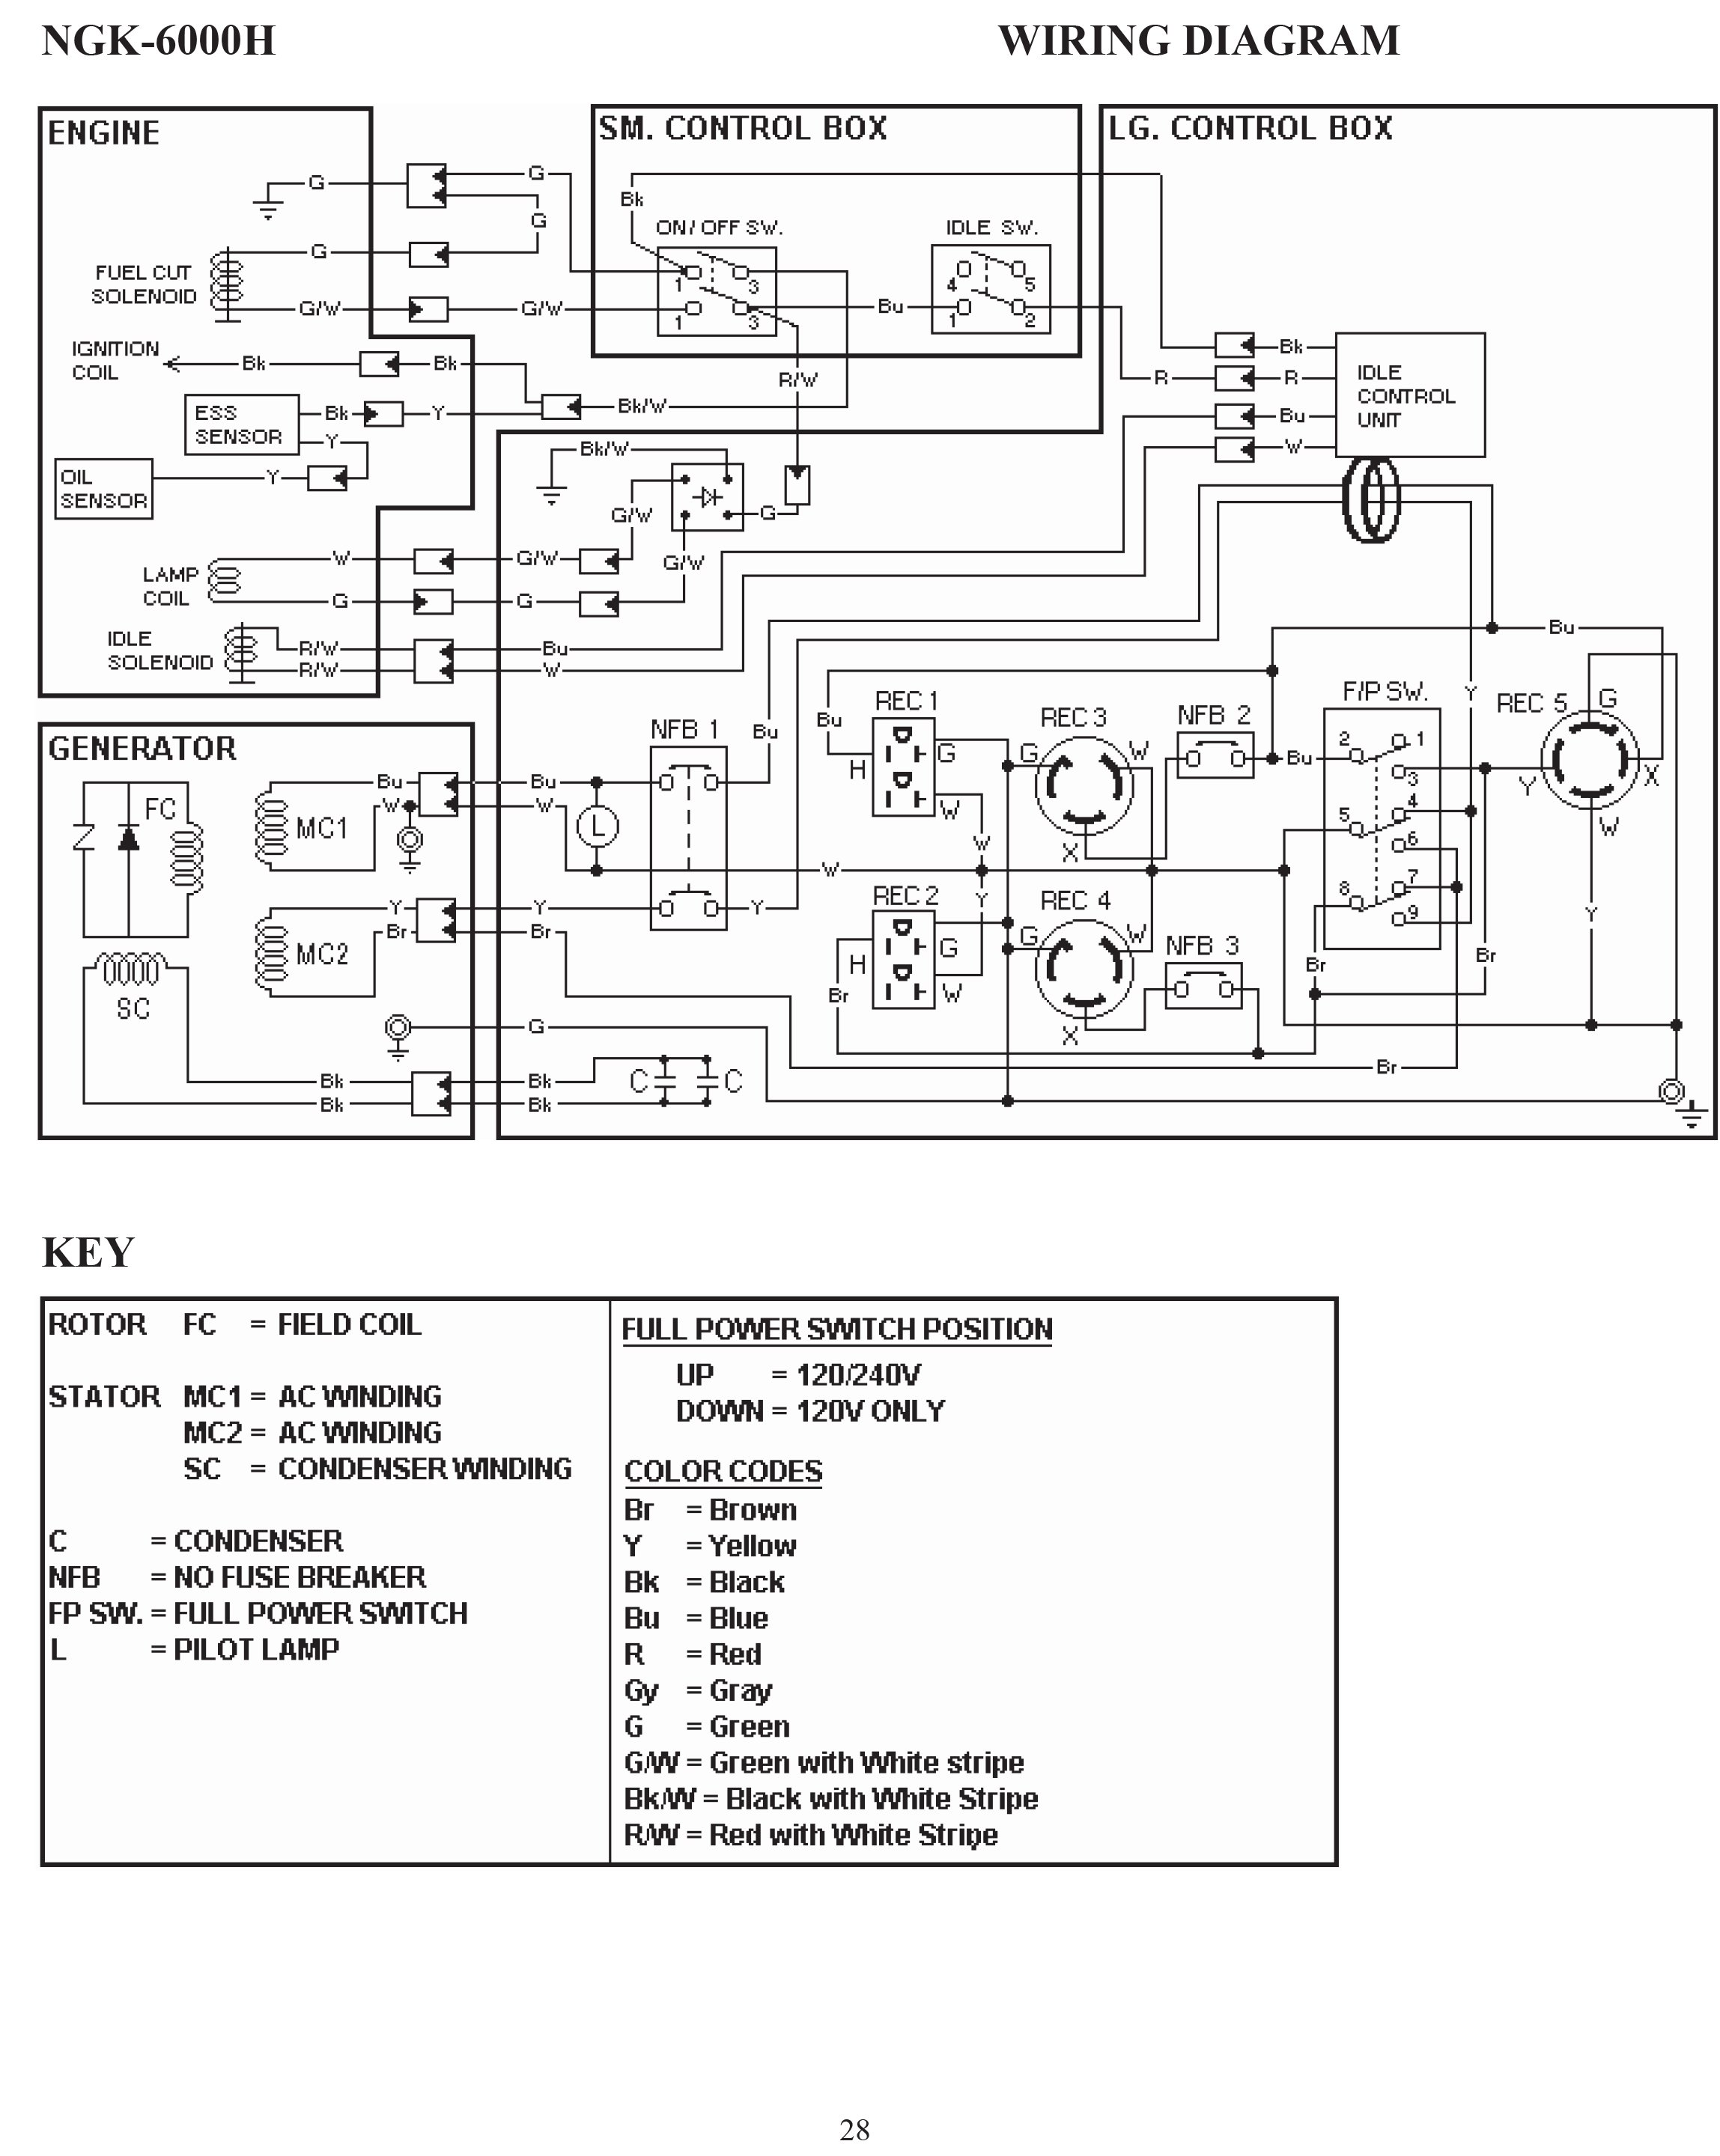 2013 11 06_014756_ngk generator honda engine wiring diagram hank, i see your reply to the problem with the dewalt dg6000 from MTD Riding Mower Wiring Diagram at gsmx.co